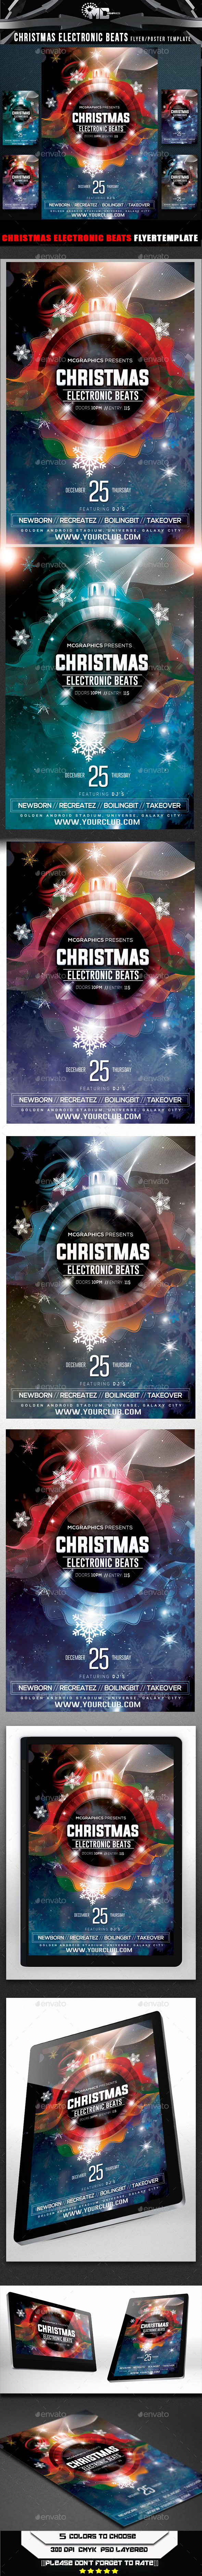 Christmas Electronic Beats Flyer Template - Flyers Print Templates